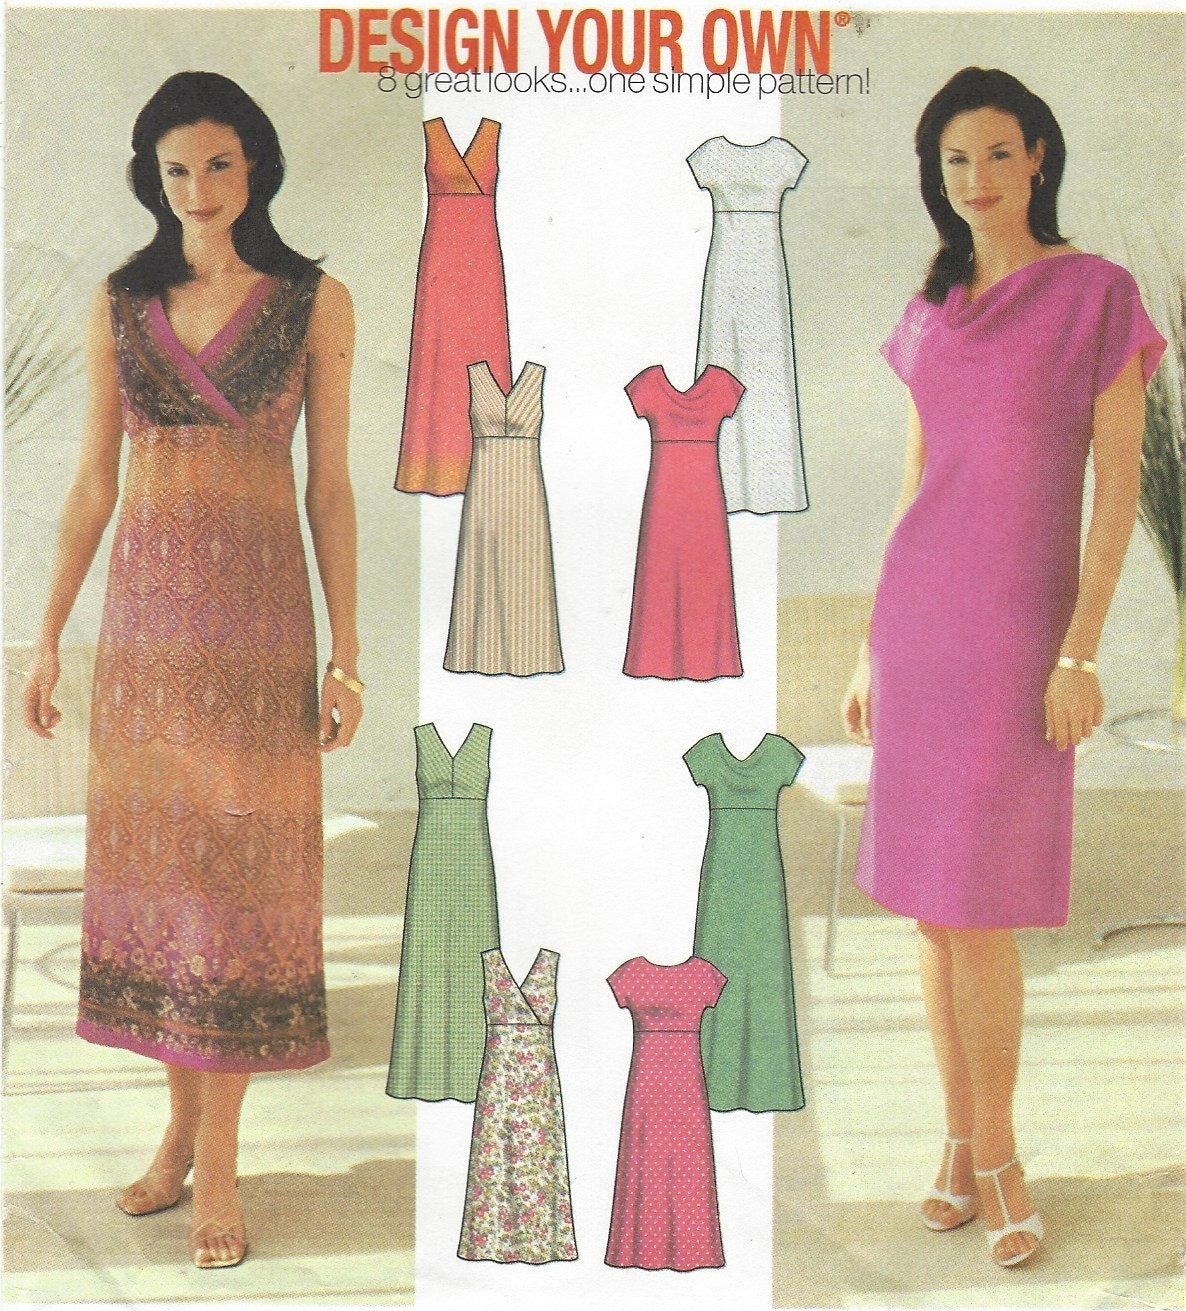 Make Your Own Dress Design: Womens Design Your Own Dress With Bodice And Length